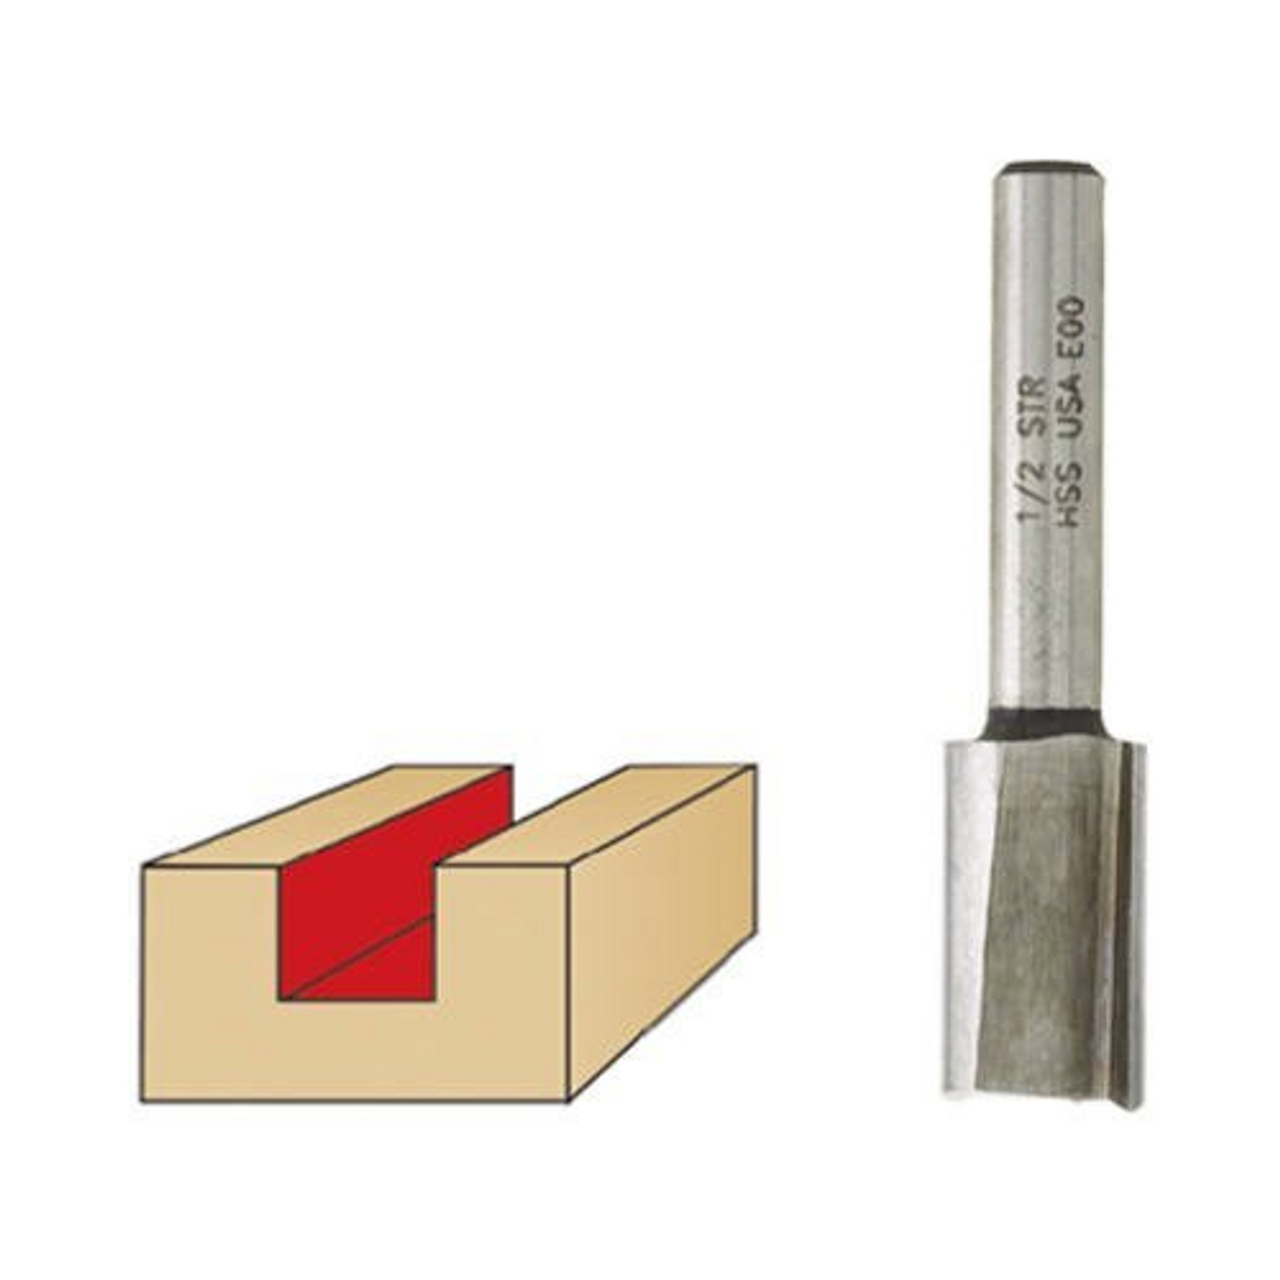 1-Flute 1//4-Inch Shank Vermont American 23102 1//4-by-5//8-Inch Carbide Tipped Straight Router Bit